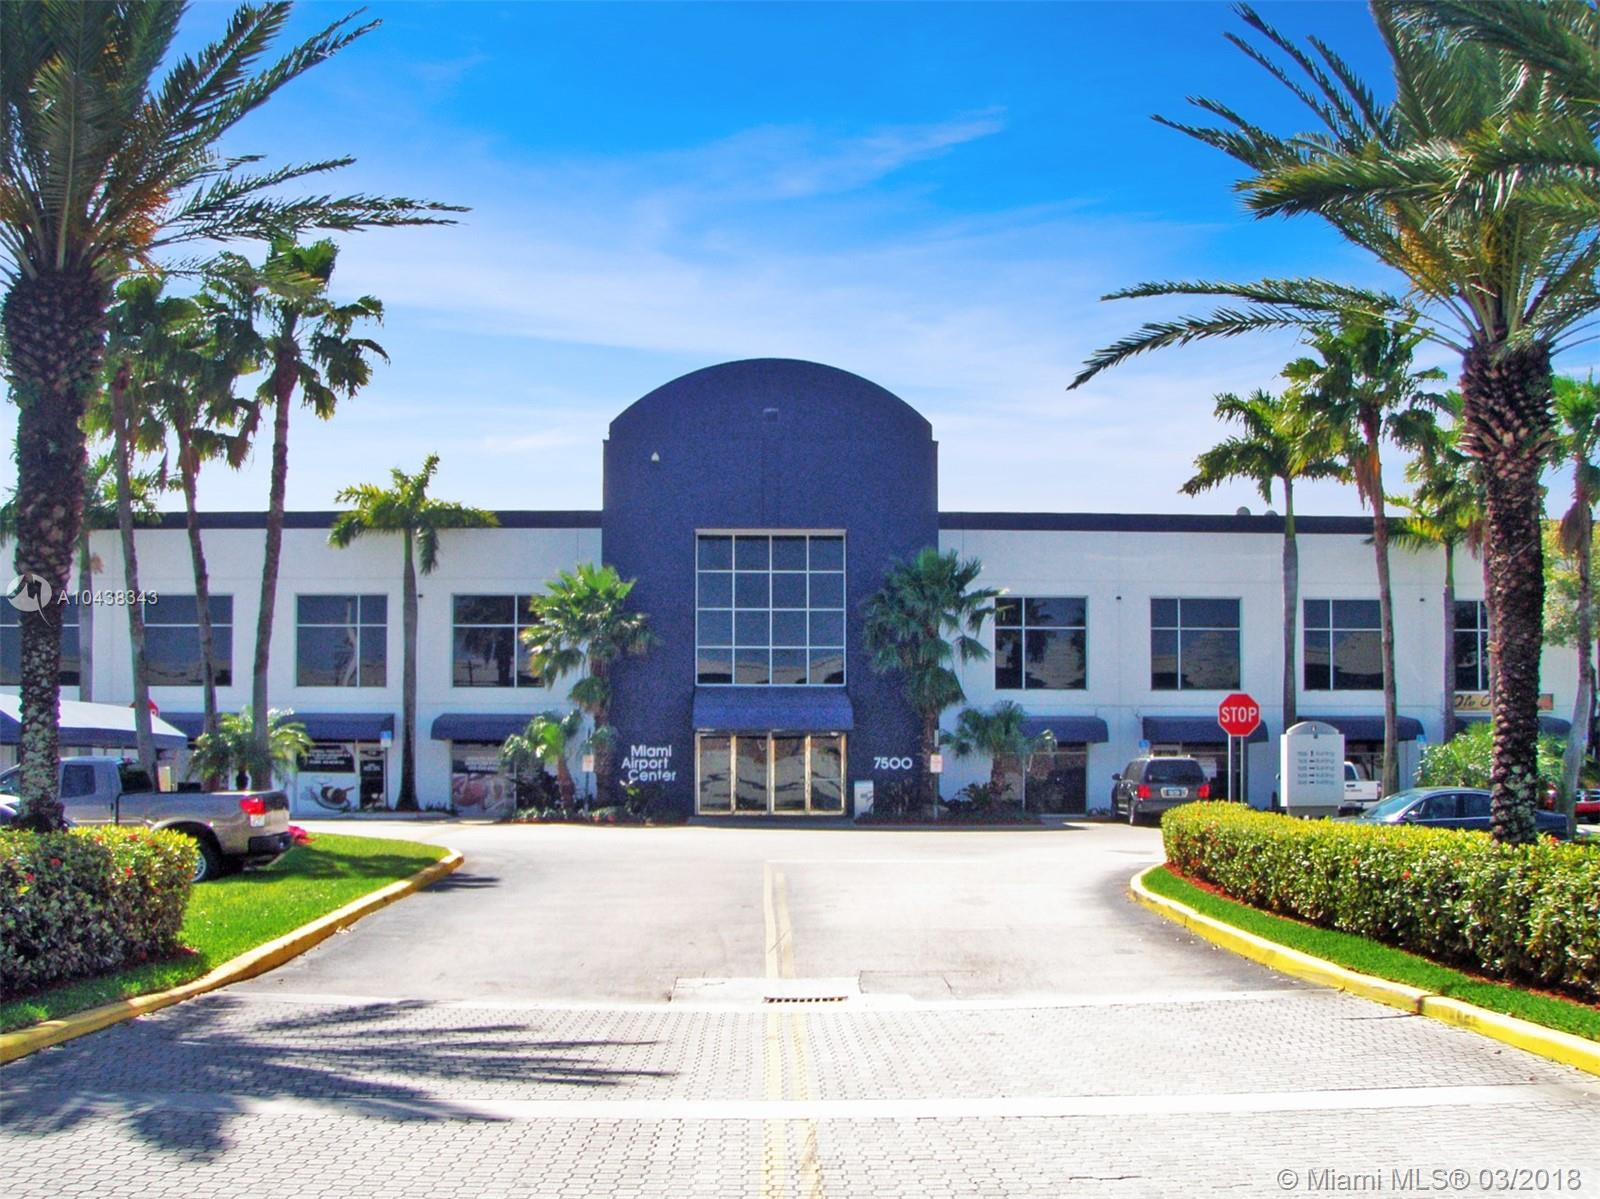 7500 NW 25th St # 240, Miami, Florida 33122, ,Commercial Sale,For Sale,7500 NW 25th St # 240,A10438343